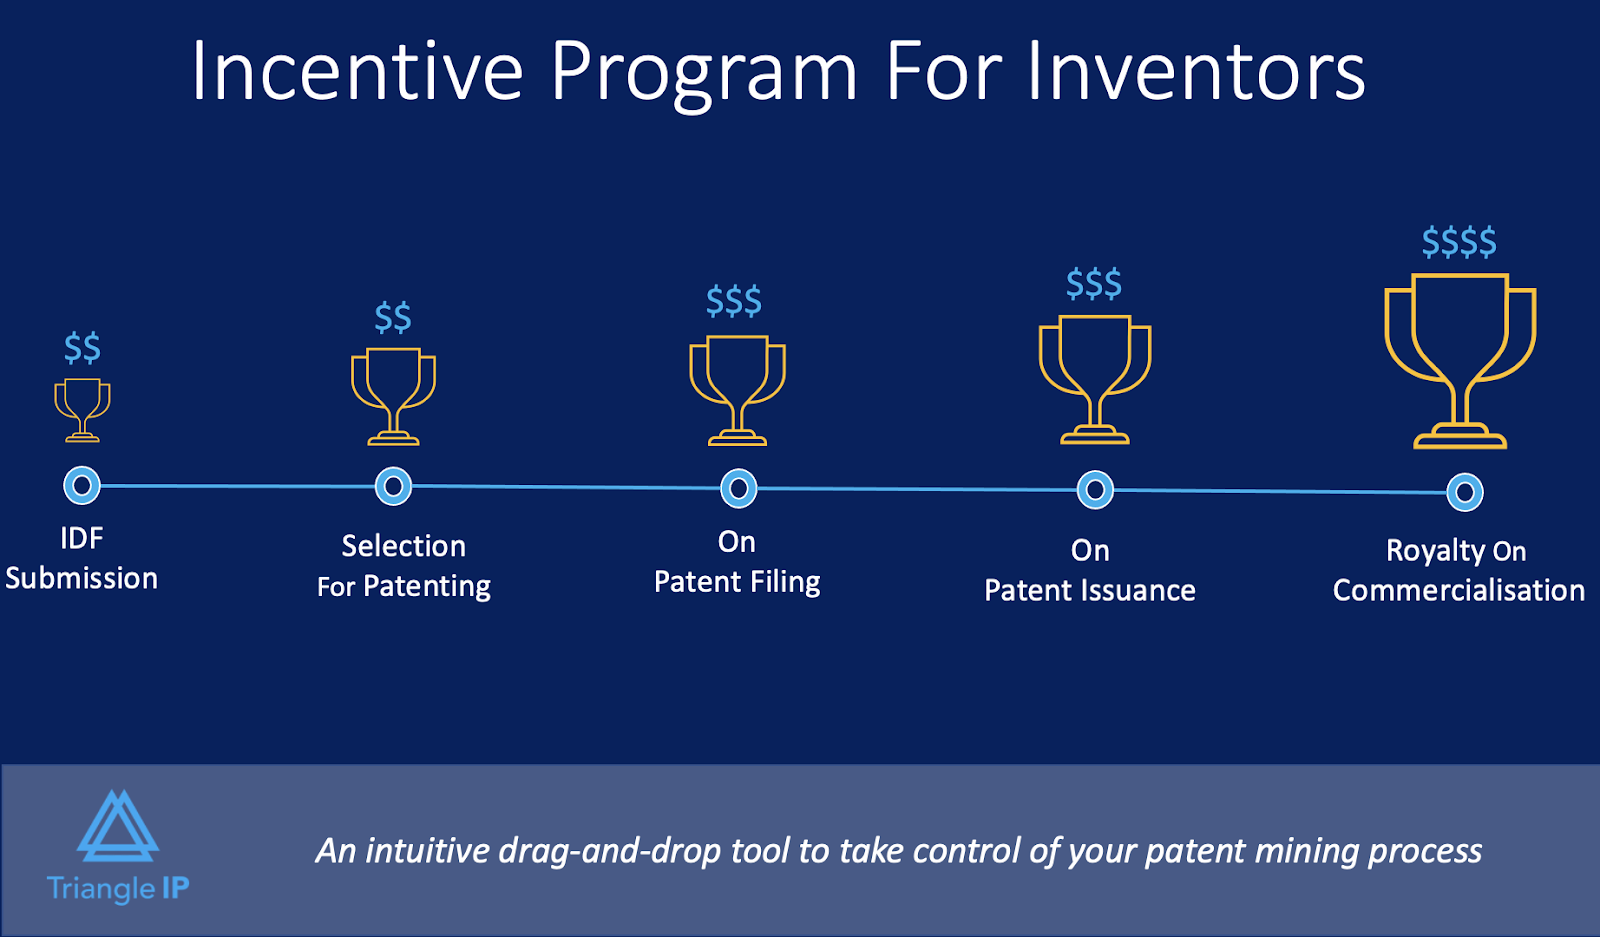 Incentive program for inventors to motivate them to submit more invention disclosures